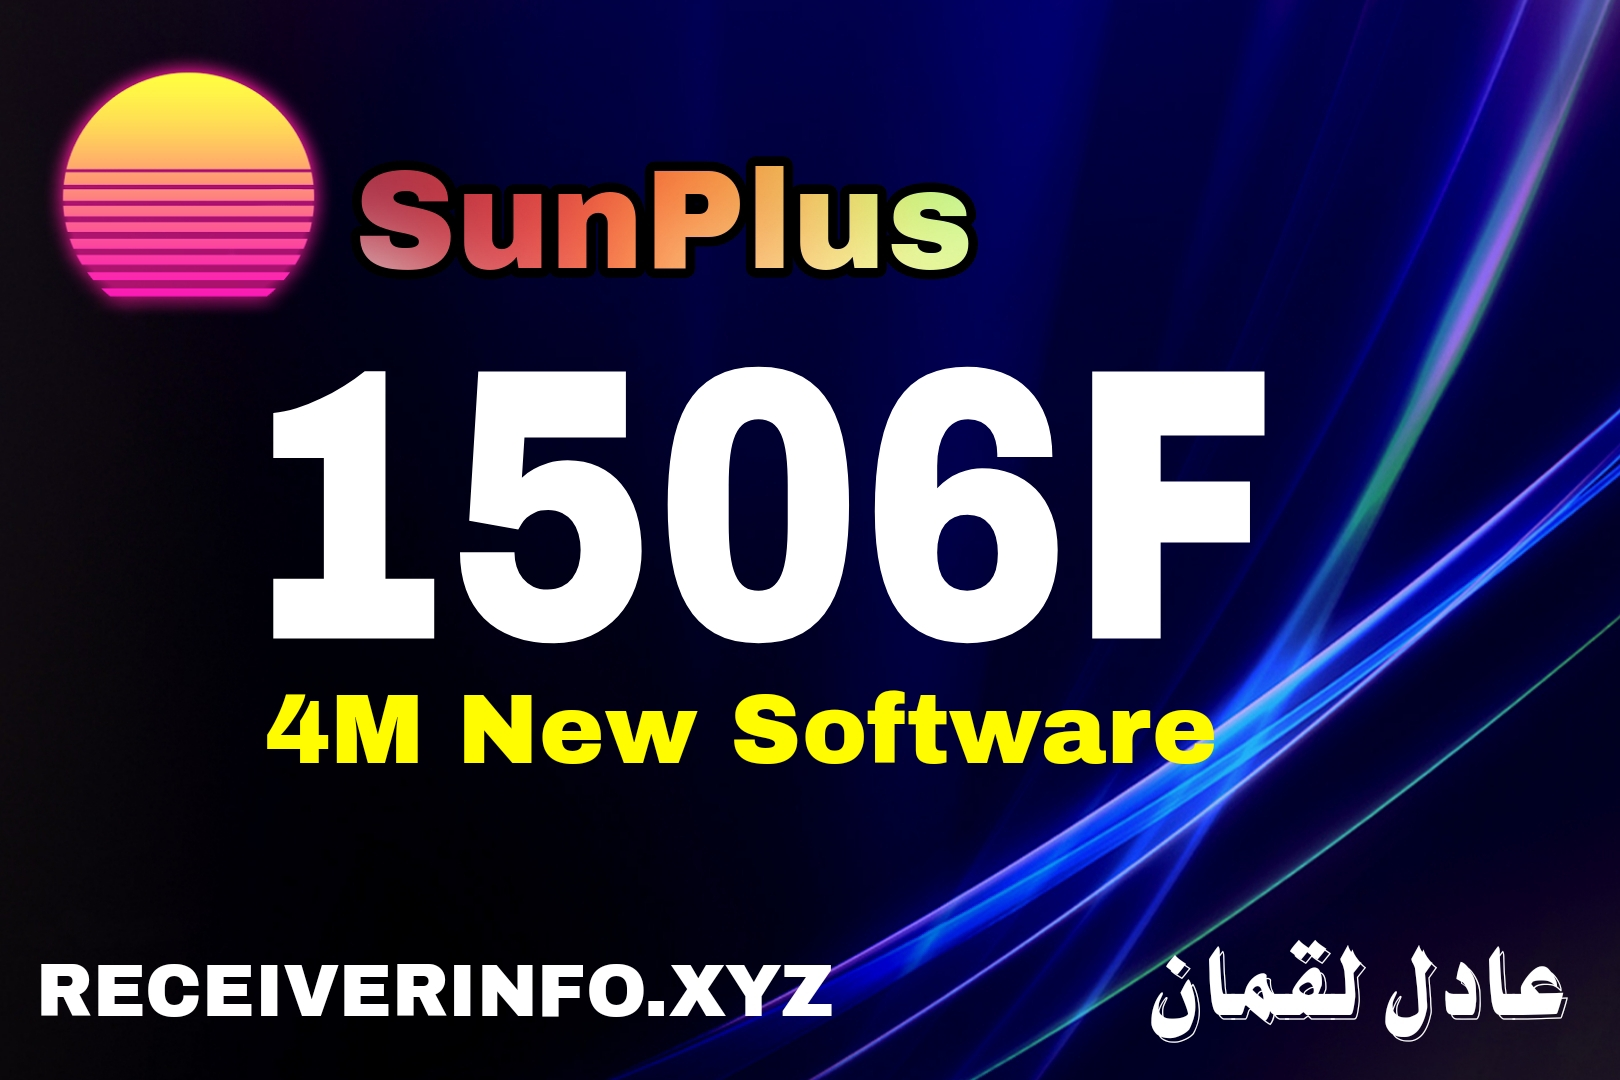 Sunplus Chipset 1506f Hd Receiver All Software With Full Specification